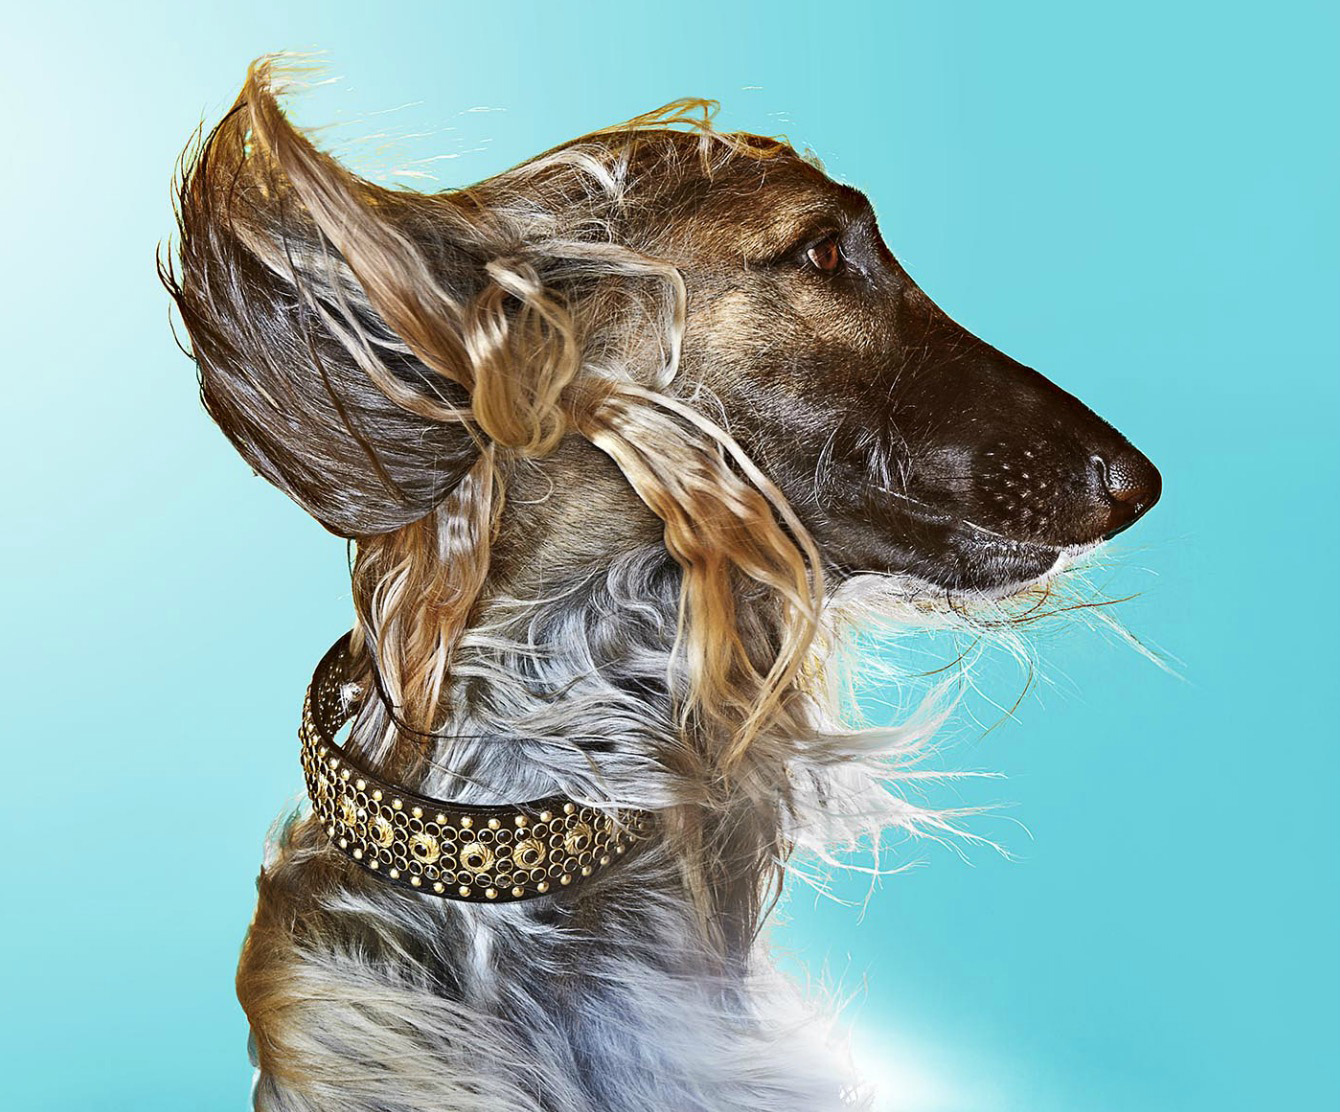 Profile of Afghan Hound against blue background with wind blowing against the face Copyright Gandee Vasan